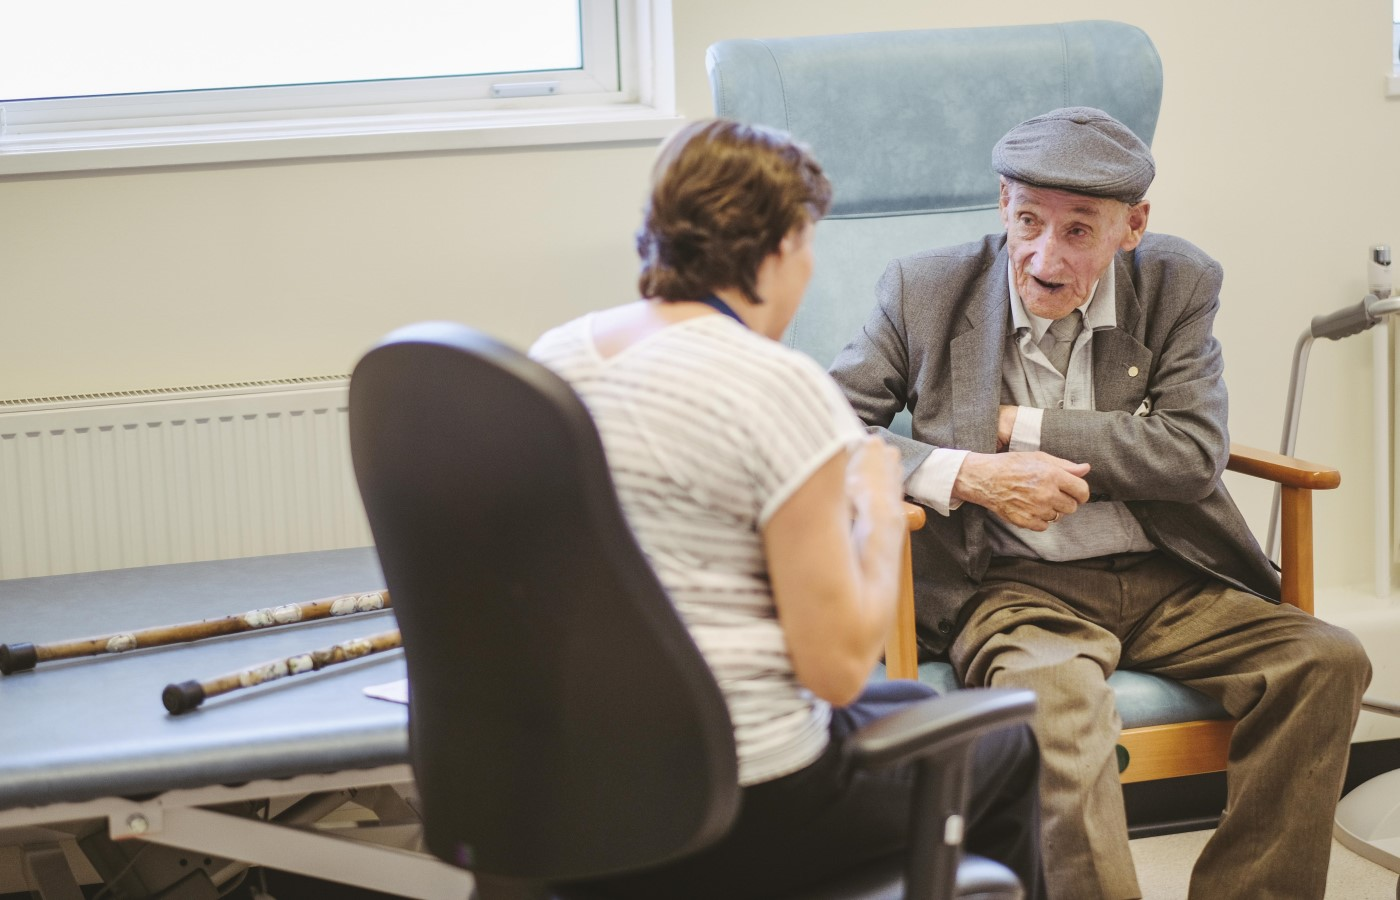 Study reveals increased risk of mortality from COVID 19 patients with frailty